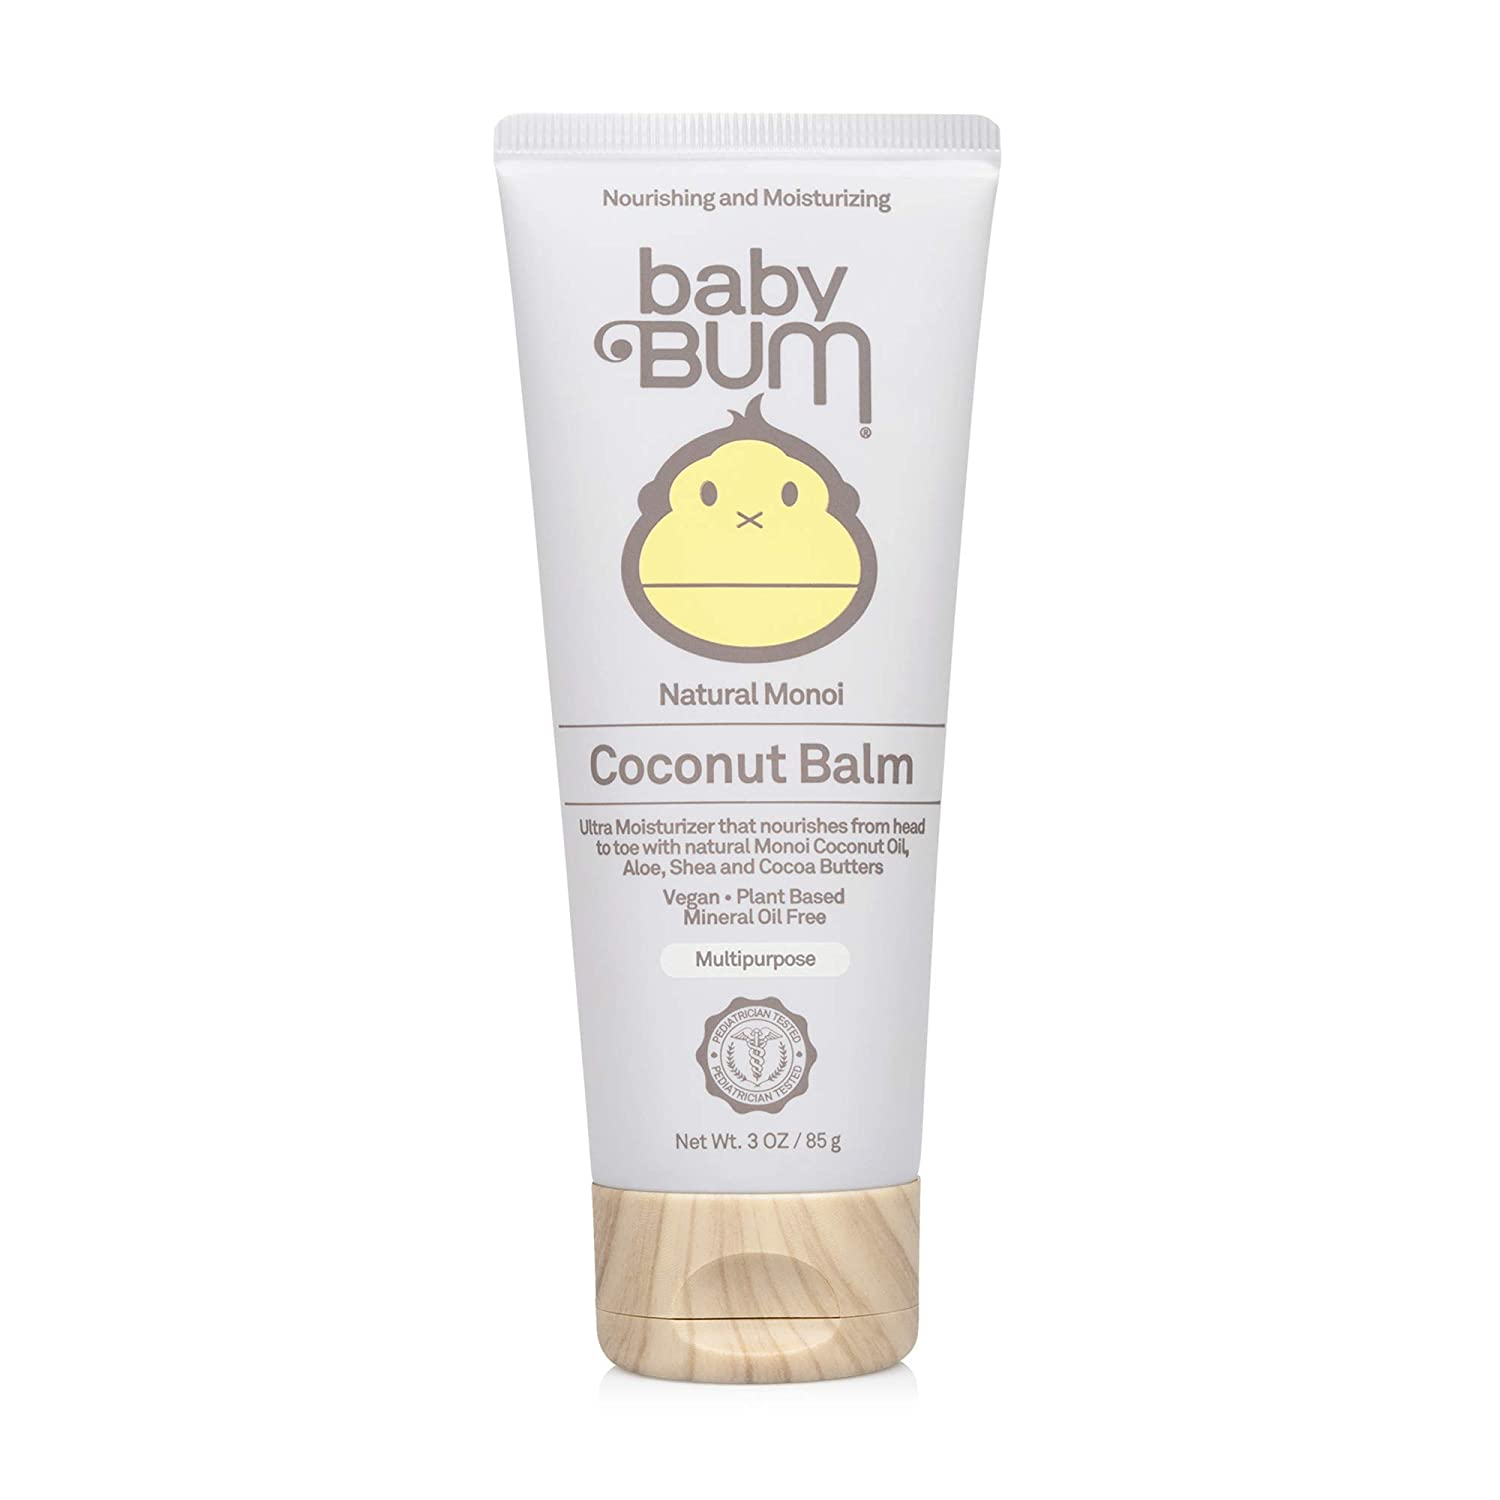 Baby Bum Monoi Coconut Balm | Natural Multipurpose Moisturizing Coconut Oil for Sensitive Skin with Shea and Cocoa Butter| Natural Fragrance | Gluten Free and Vegan | 3 FL OZ